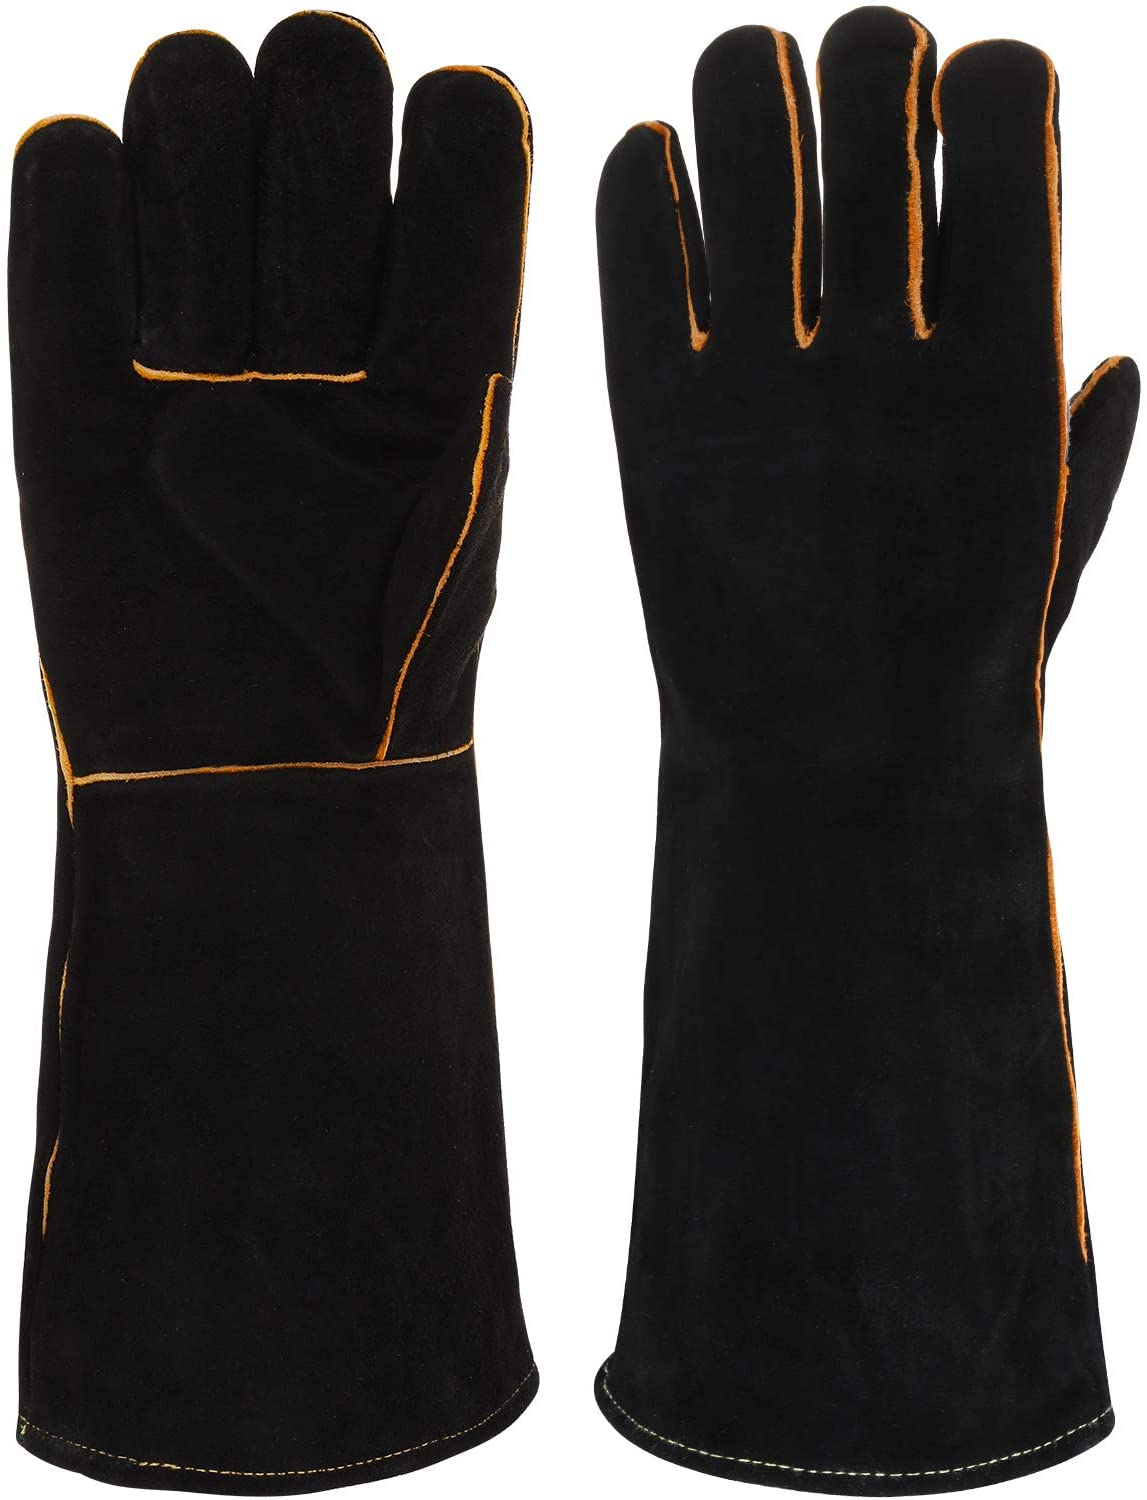 RXG Welding Gloves Barbecue Gloves Heat Resistant Cut Resistant Unisex (16 inch)